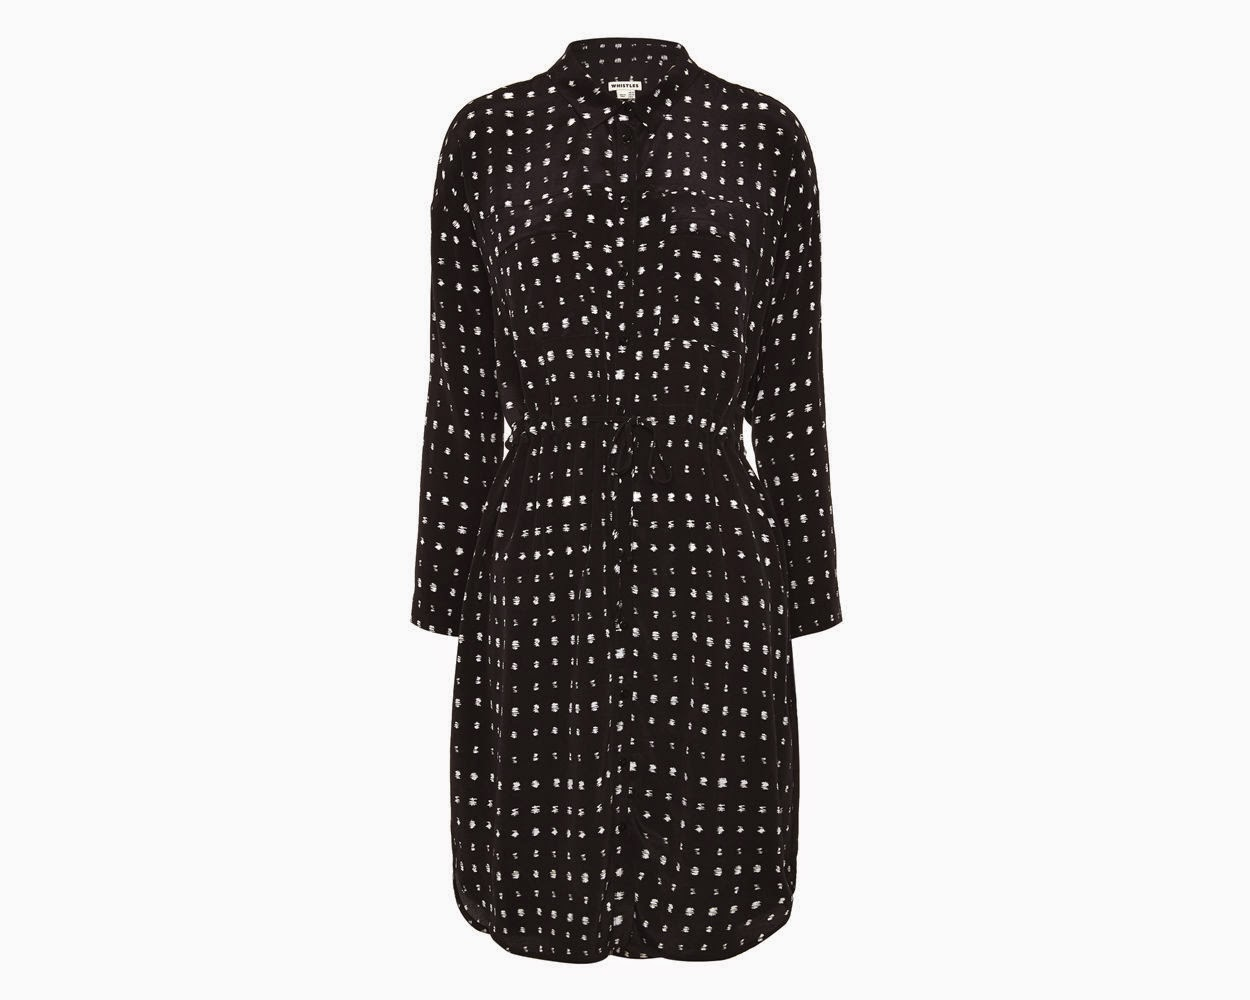 whistles black white spot dress